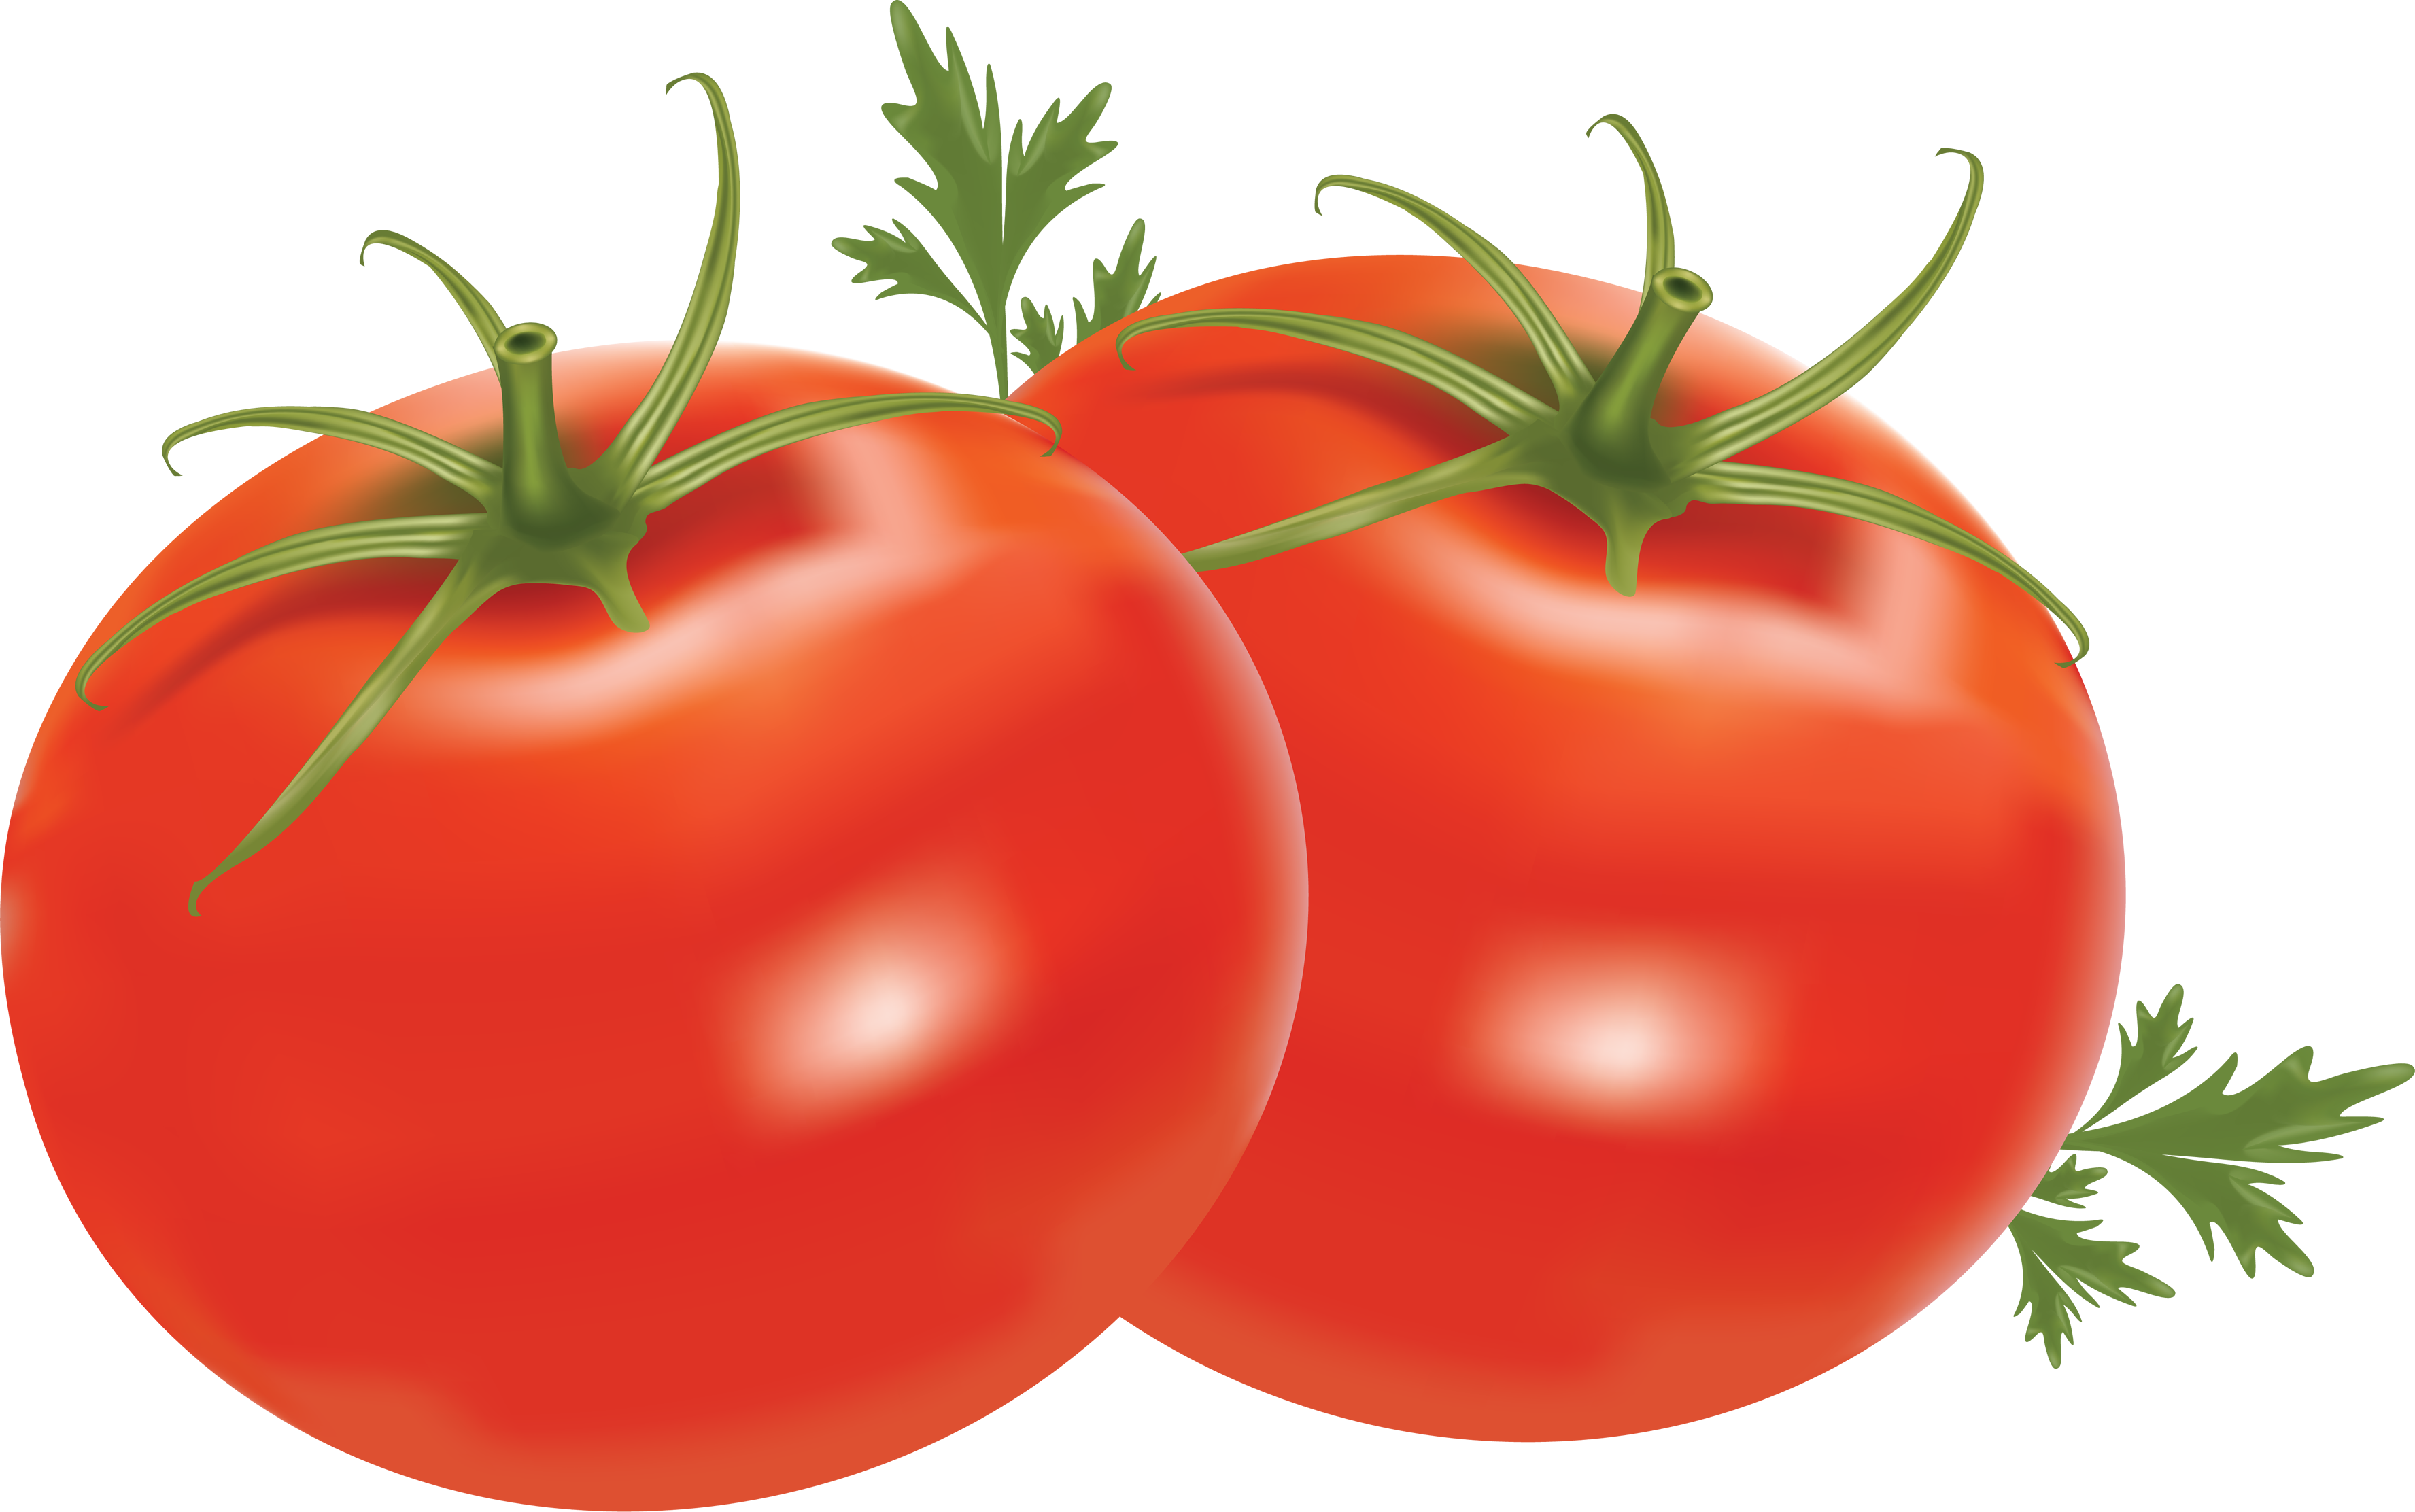 image download Tomato png images free. Tomatoes clipart